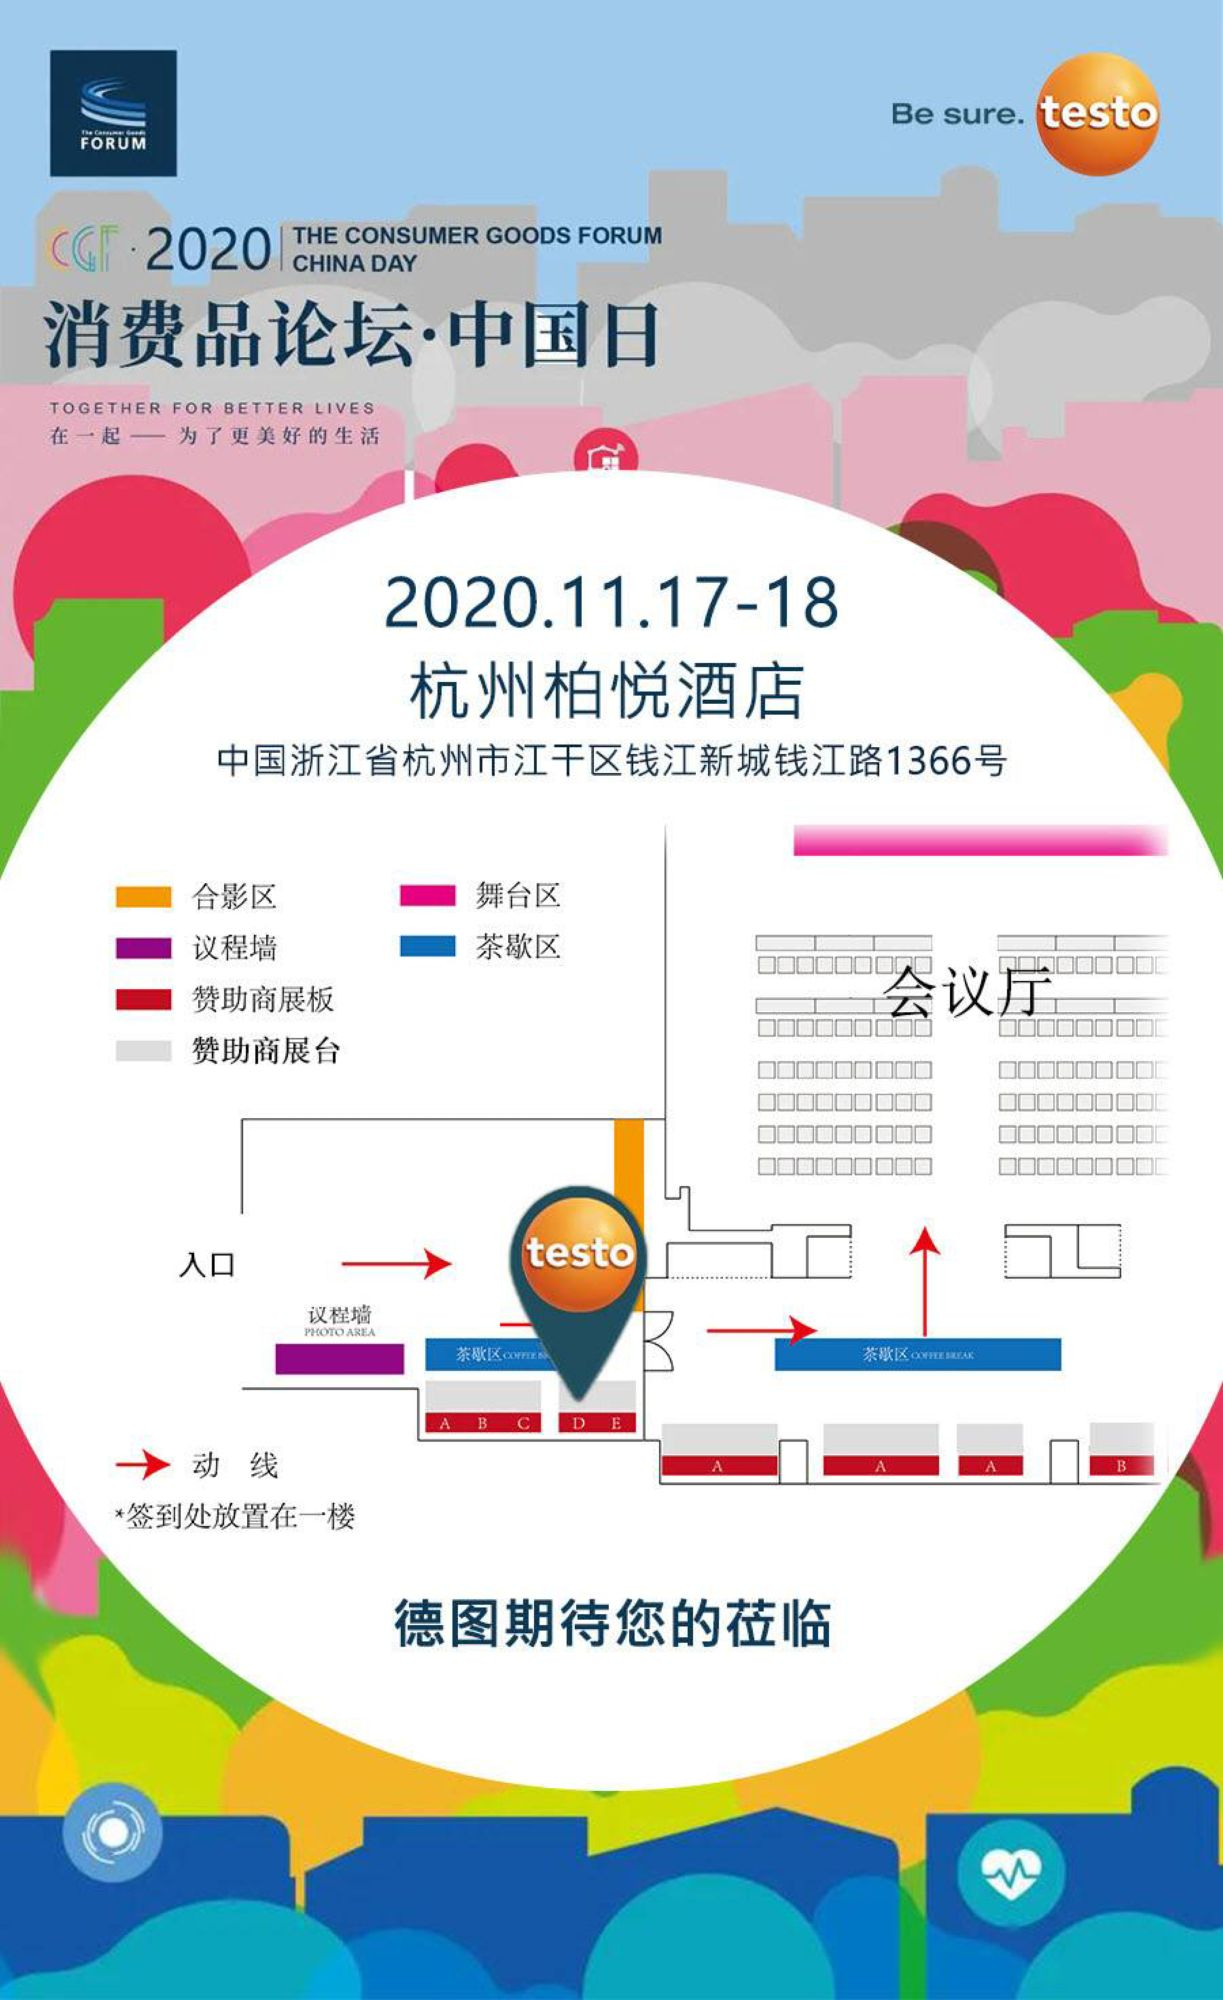 CN_20201116_Food_localcontent_CGF-2020-Map-Poster.jpg